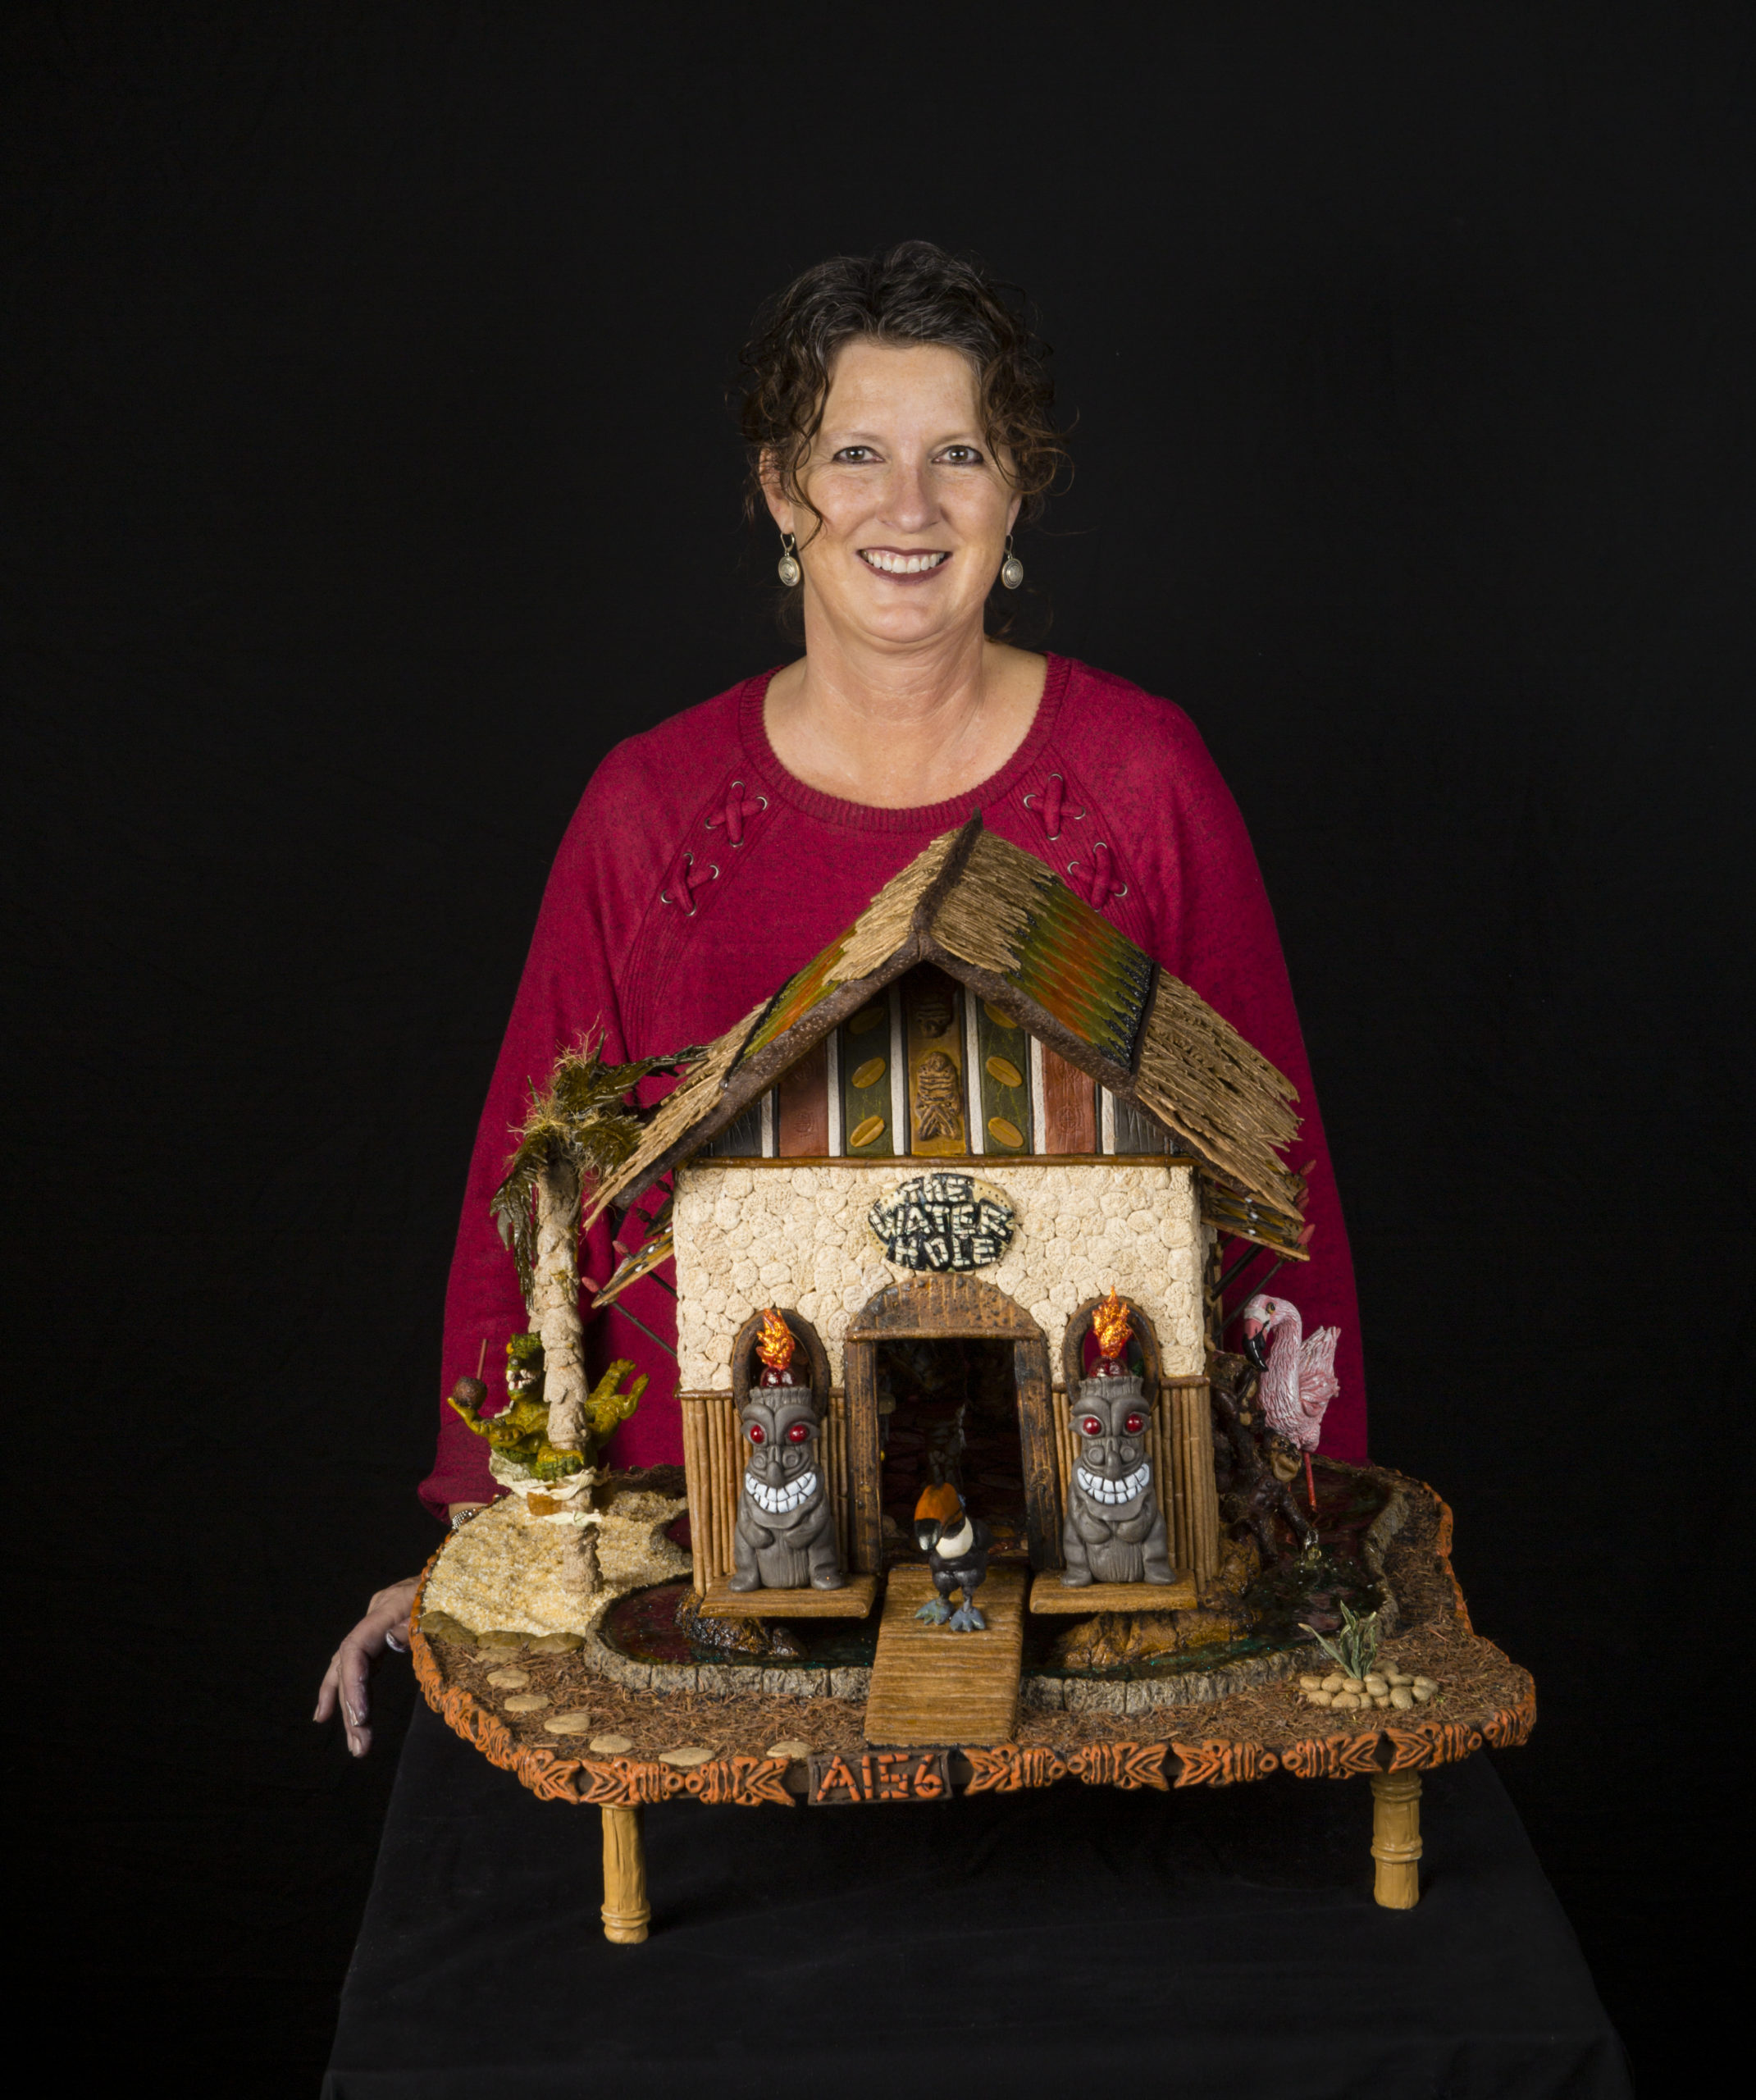 Gail Oliver holding a decorated gingerbread cabin.